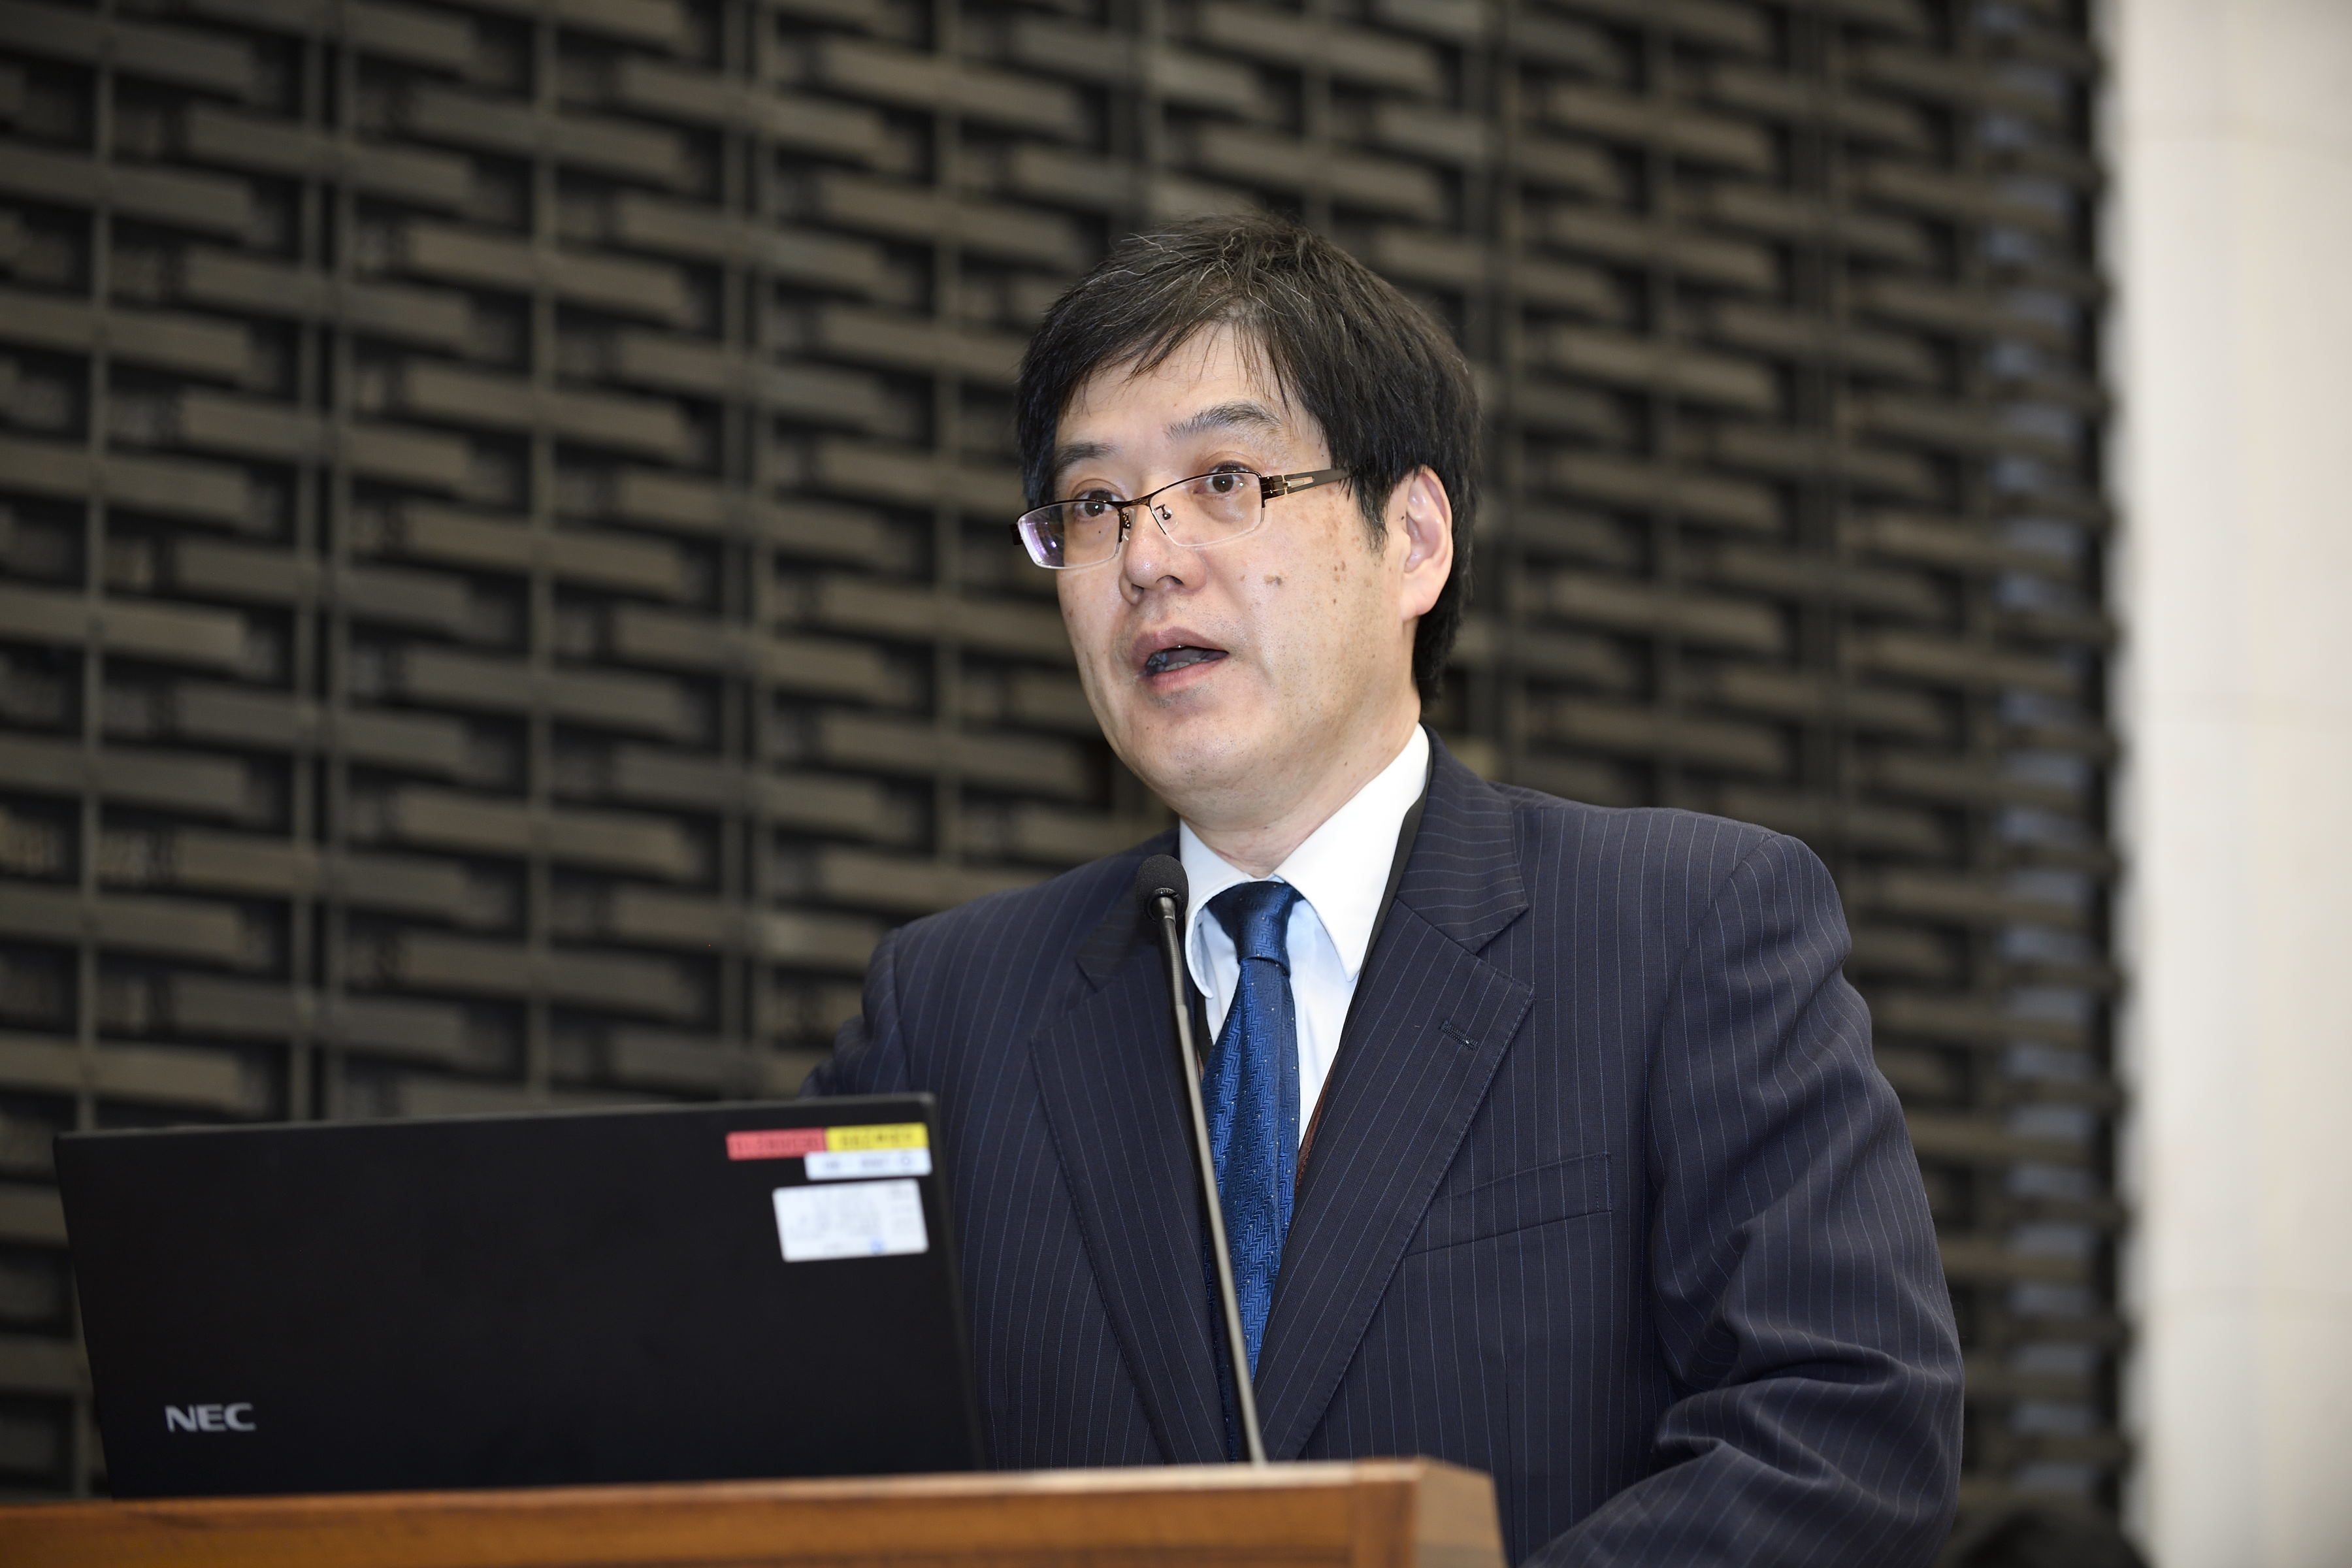 Picture: Tokio Morita, Director-General of the Strategy Development and Management Bureau, Financial Services Agency